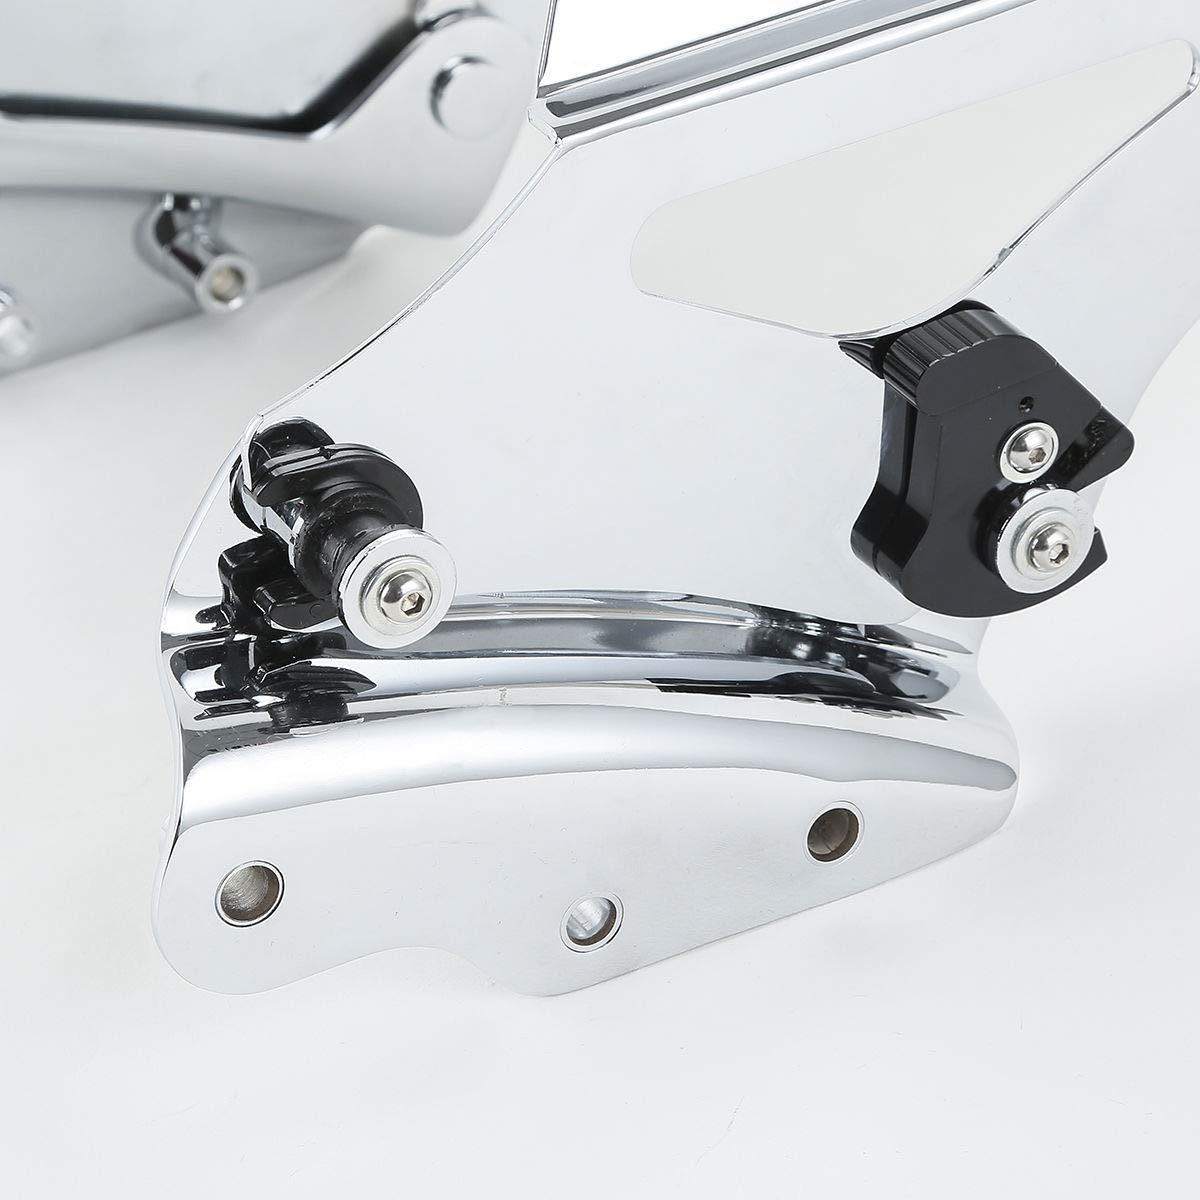 Chrome 4 Point Docking Hardware Fits For Harley Touring 09-13 TCMT Detachable Two Up Tour Pak Pack Mounting Luggage Rack